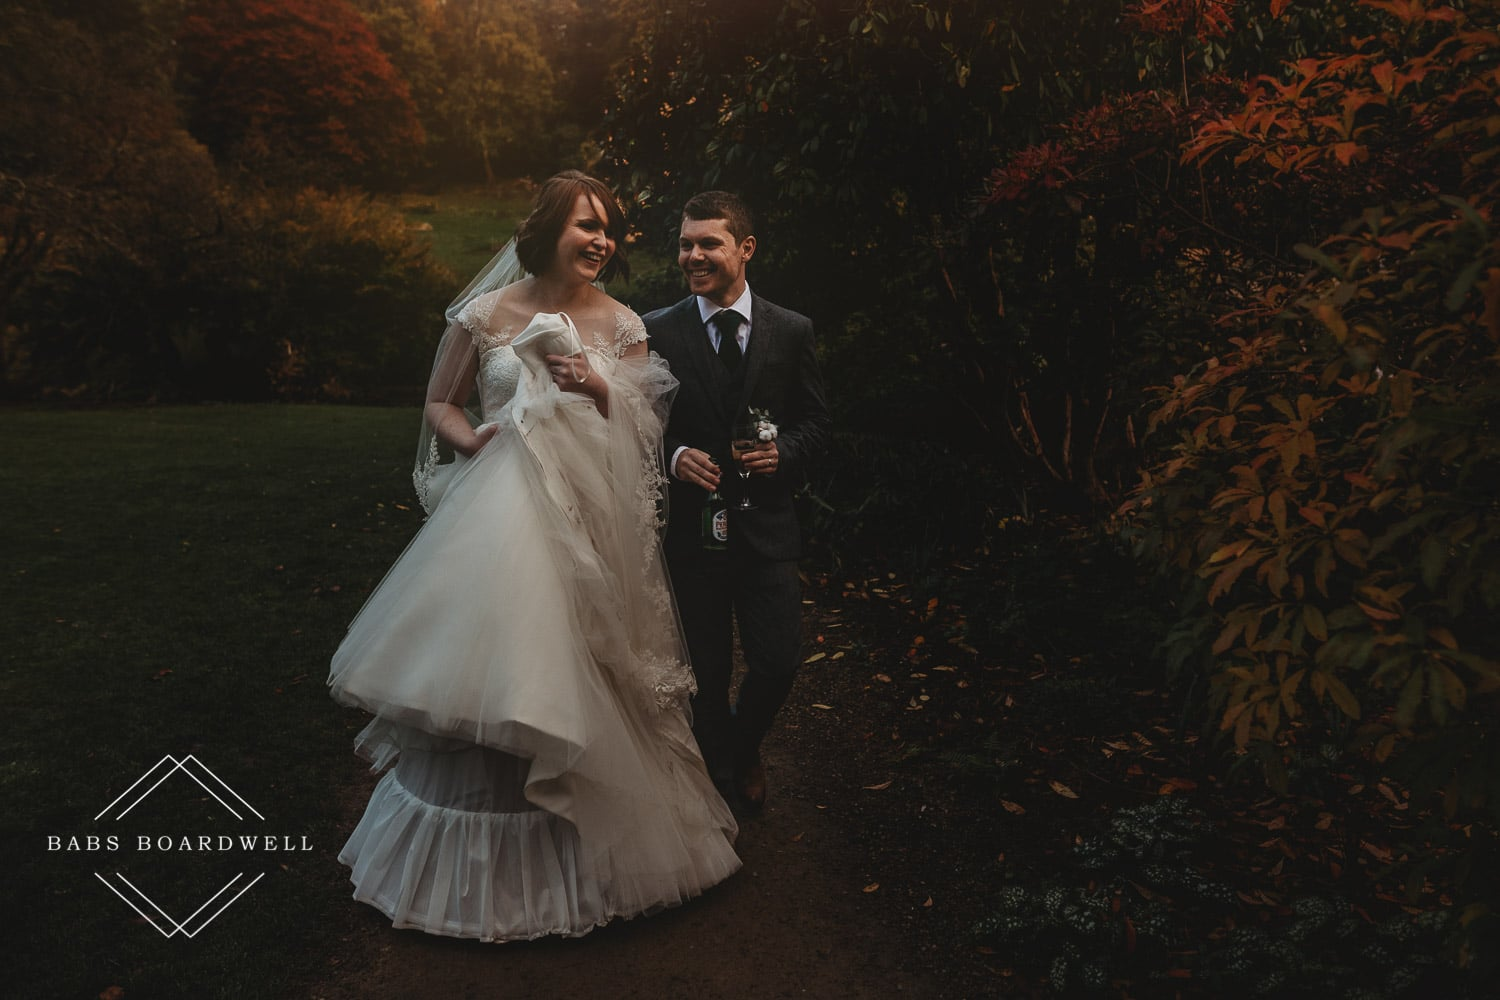 Photriya Photography Cost For Wedding: How Much Should A Wedding Photographer Cost?